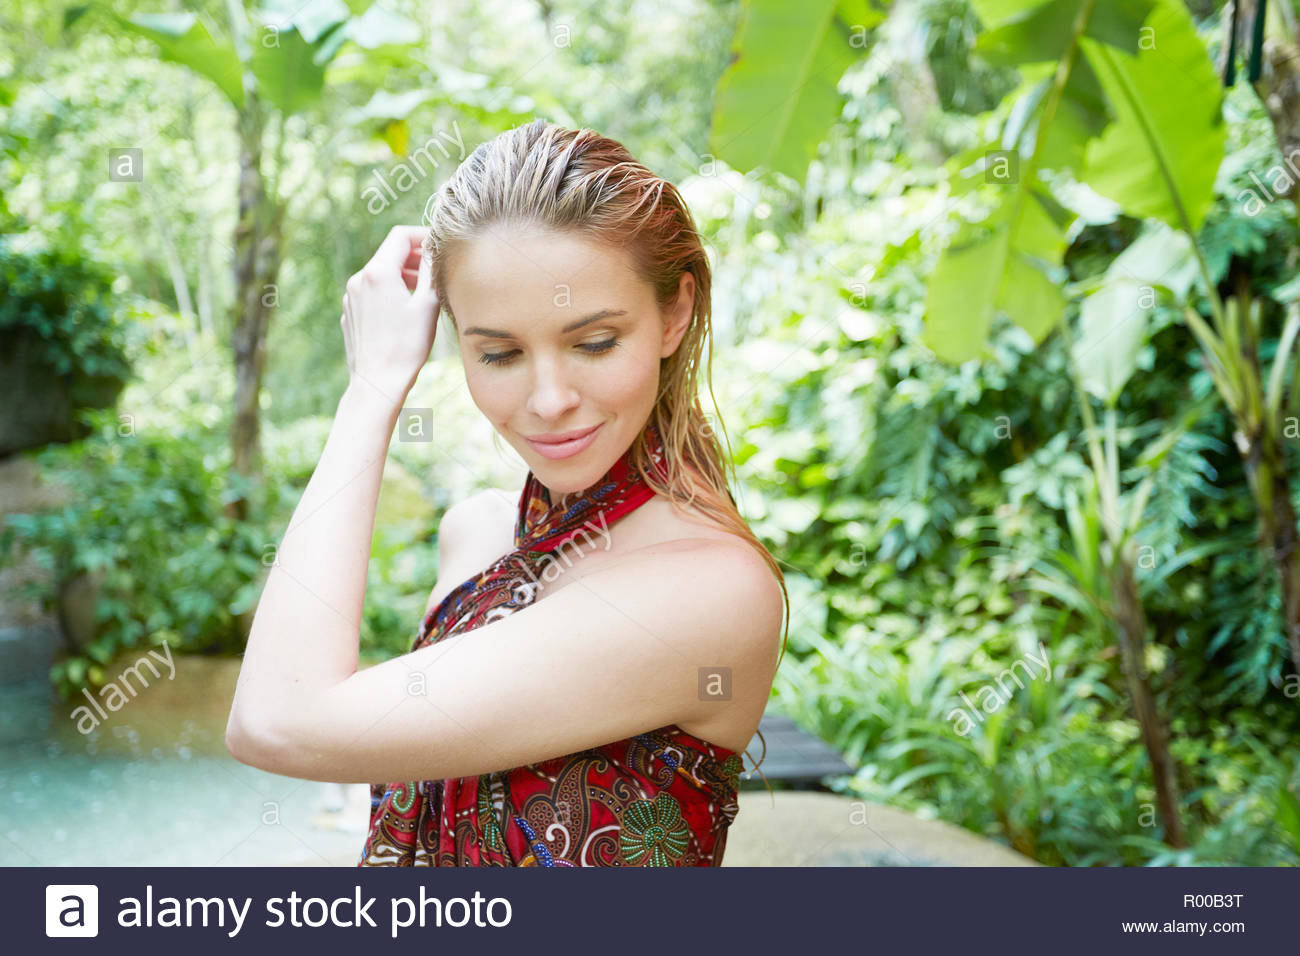 Young woman with wet hair by tropical trees Stock Photo